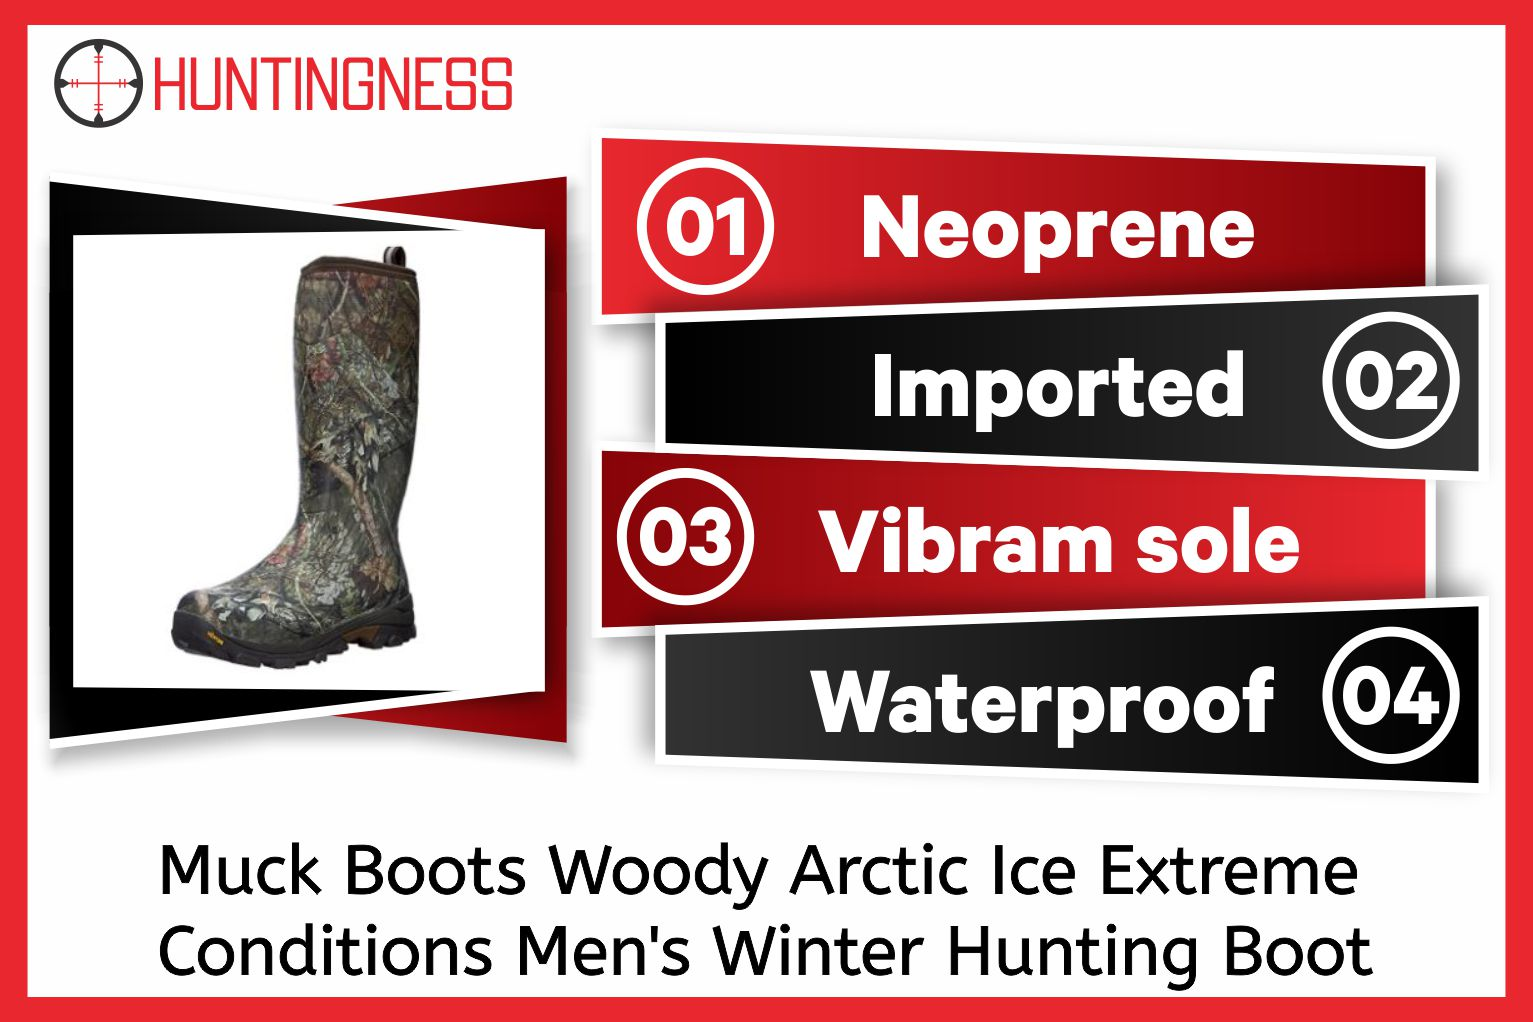 Muck Boots Woody Arctic Ice Extreme Conditions Men's Winter Hunting Boot With Arctic Grip